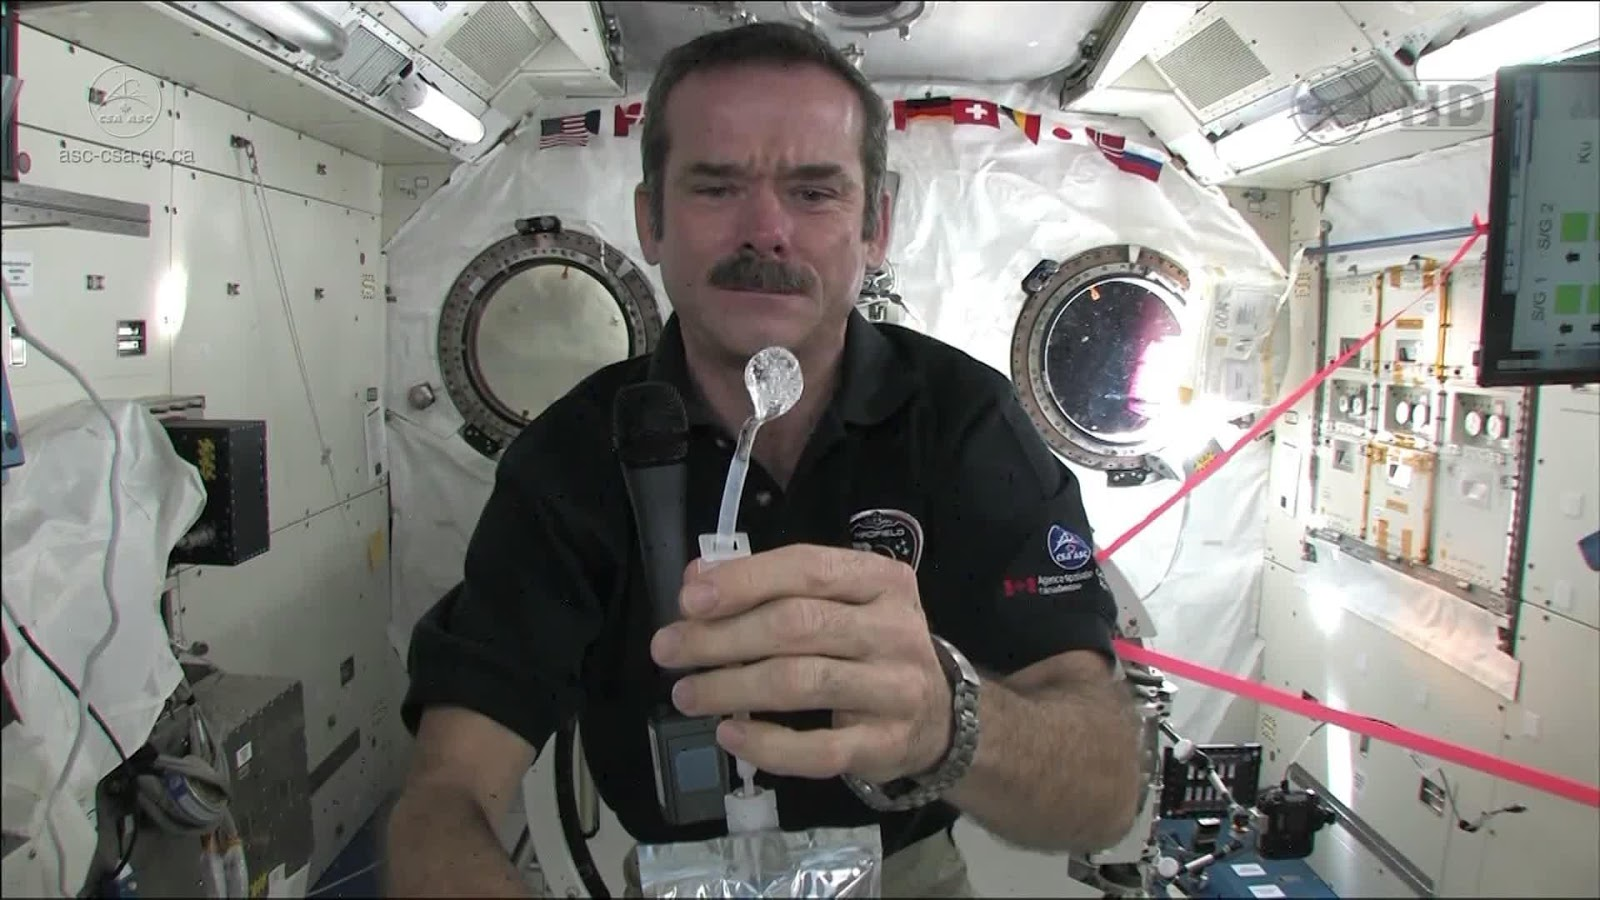 astronaut drinking beer in space - photo #22